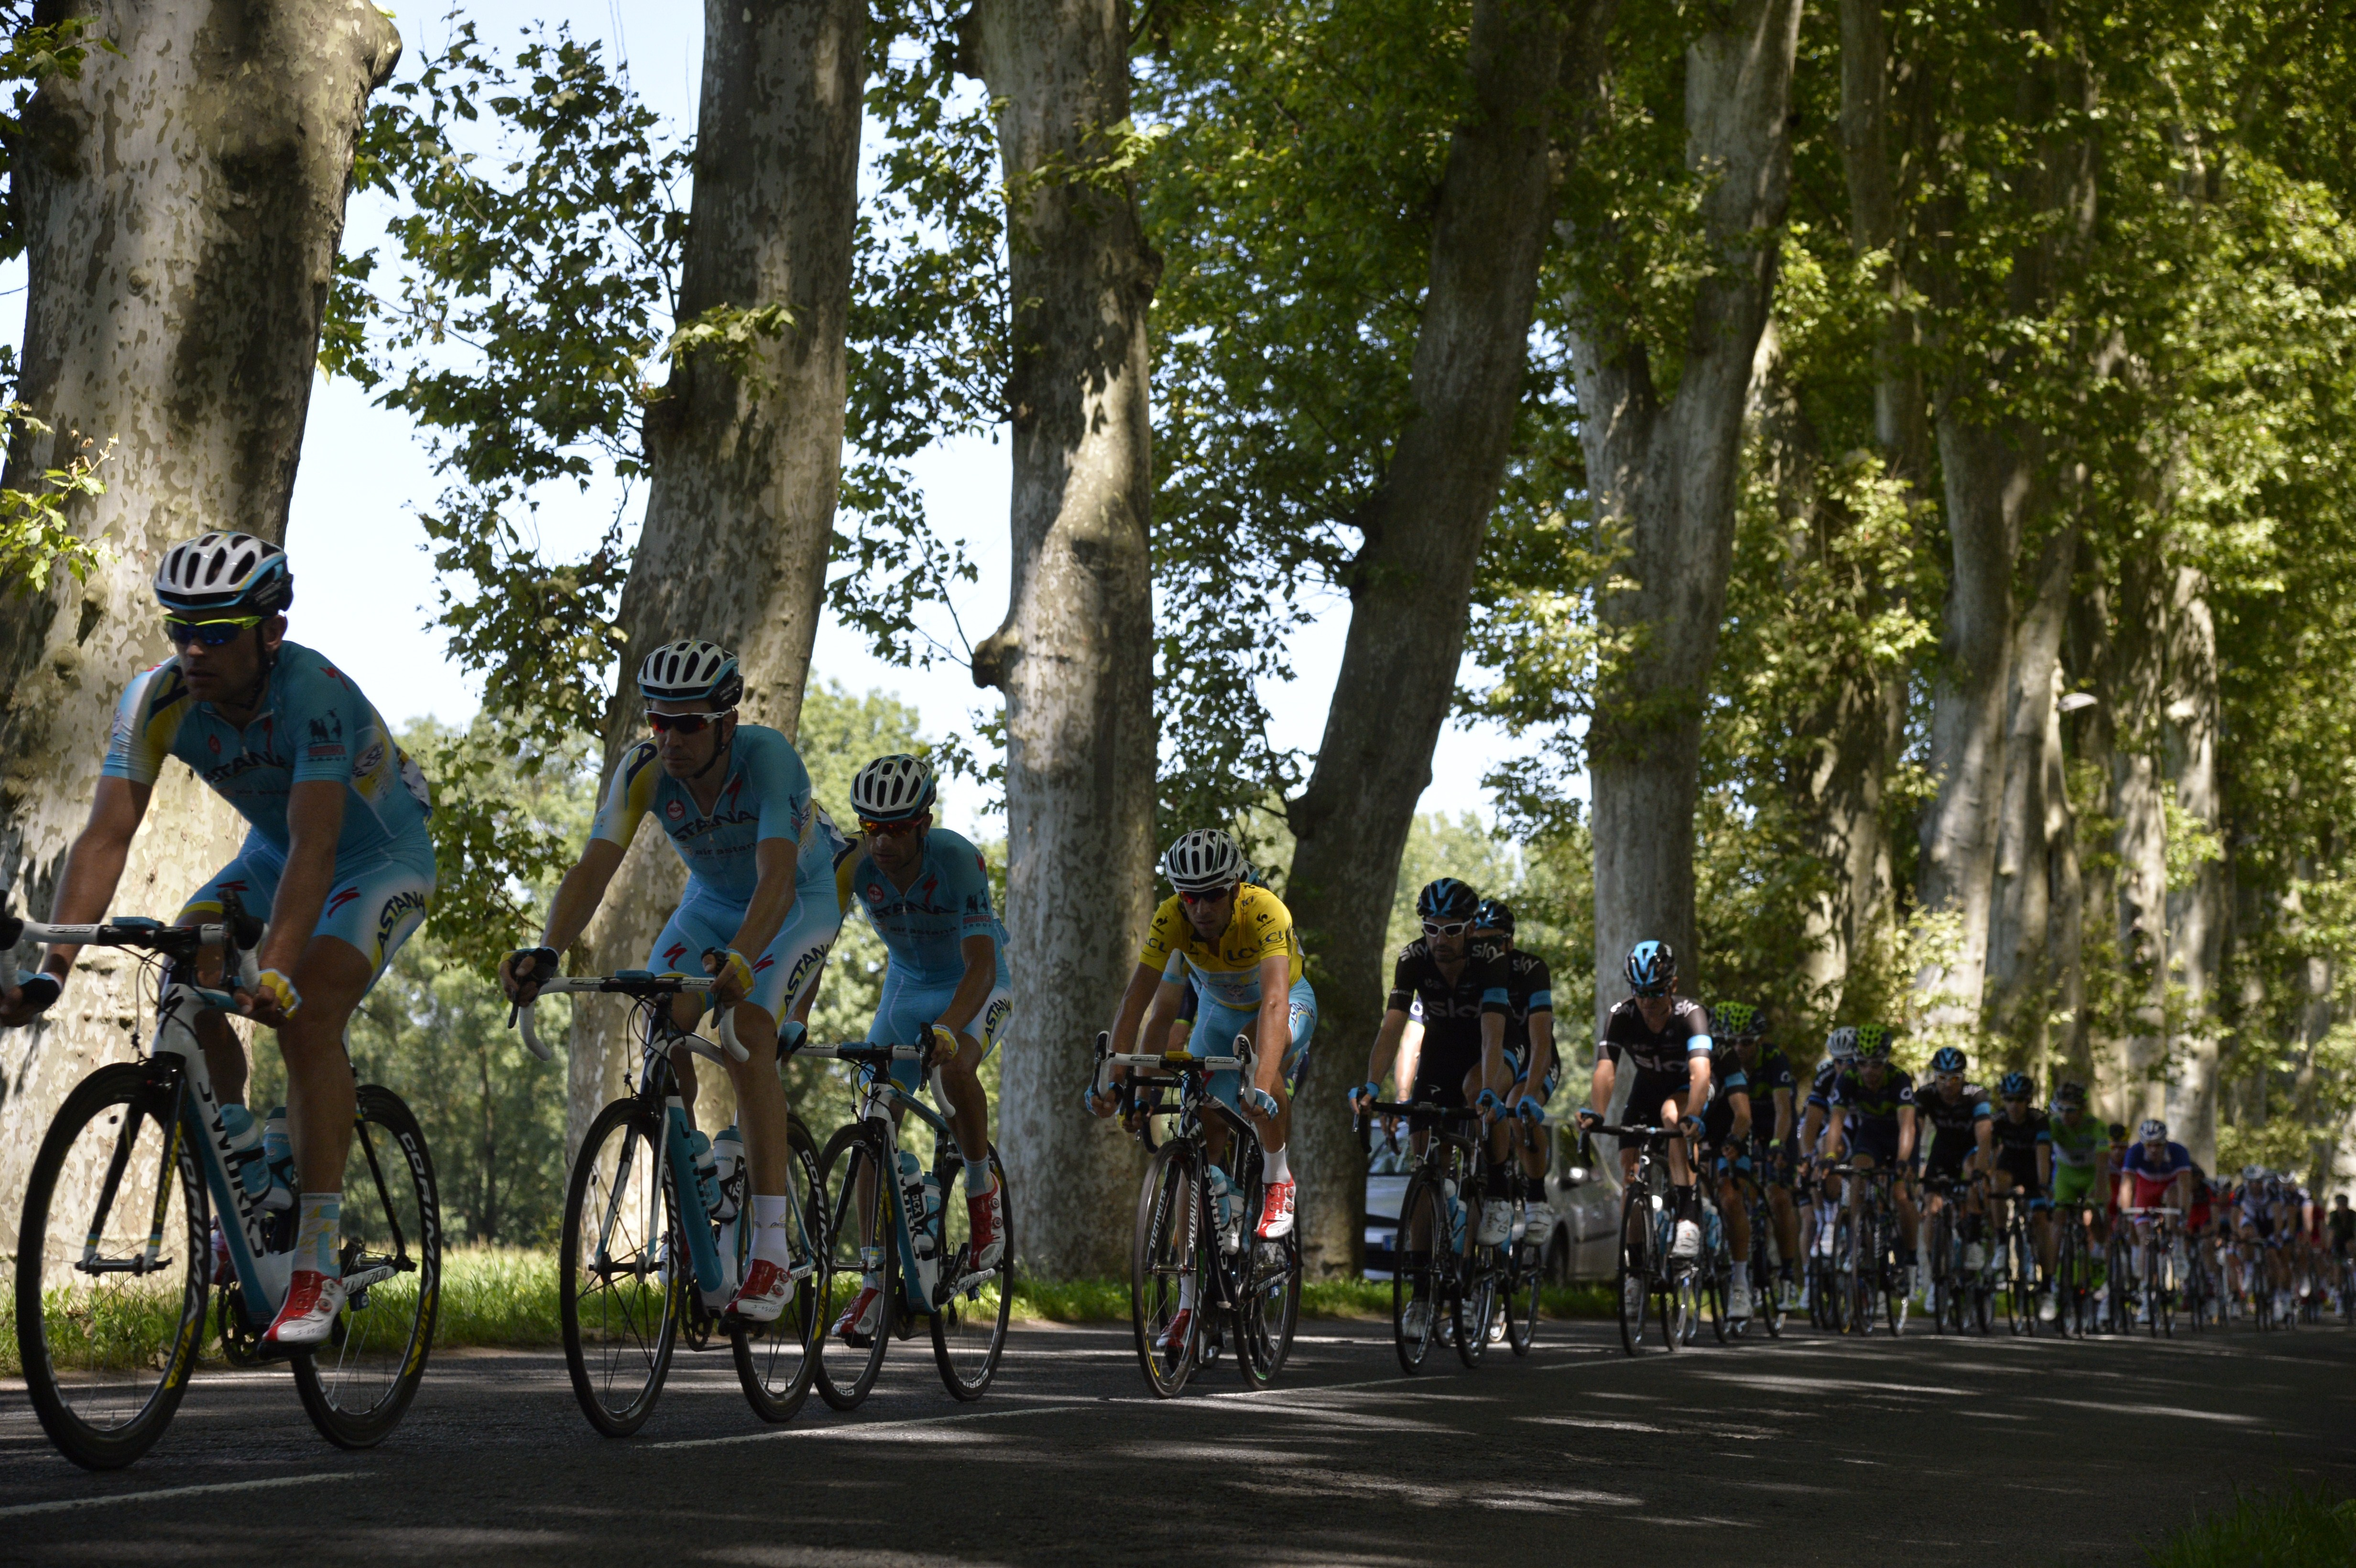 Italy's Vincenzo Nibali wearing the overall leader's yellow jersey, rides in the pack behind his Kazakhstan's Astana teammates during the 185.5 km twelfth stage.